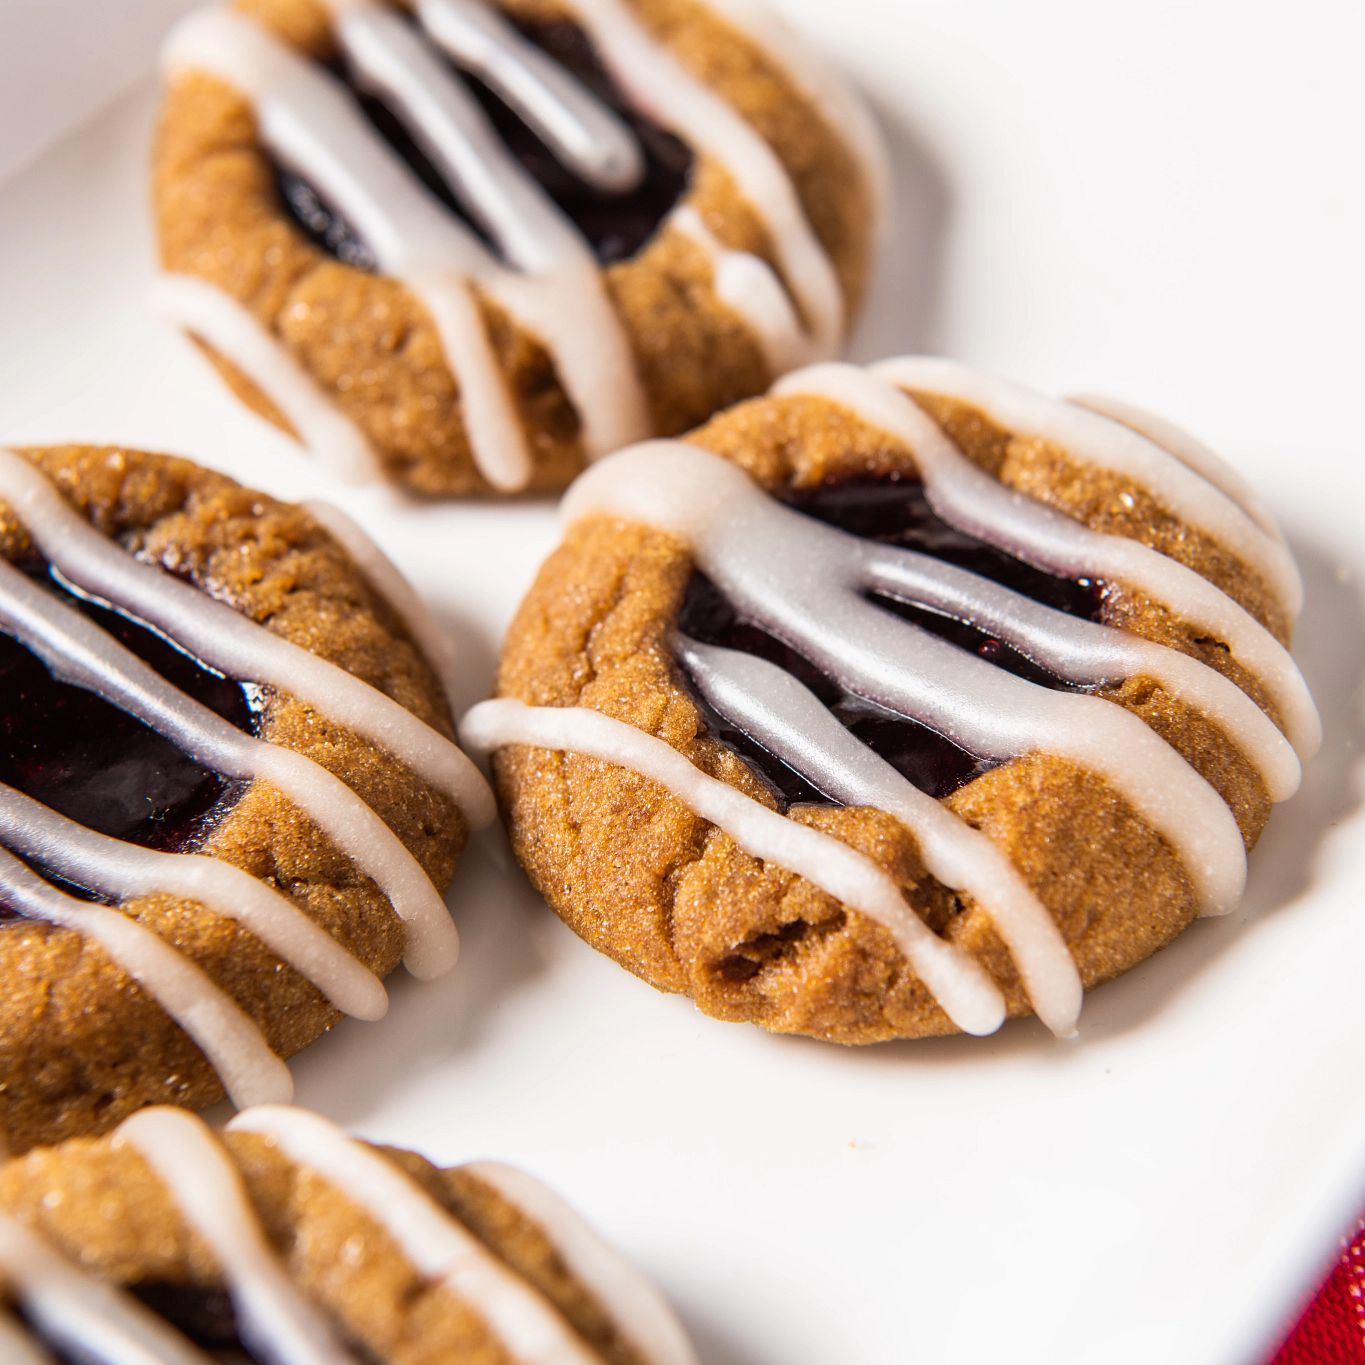 Blackberry Rum Gingerbread Thumbprint Cookies with Vanilla Drizzle